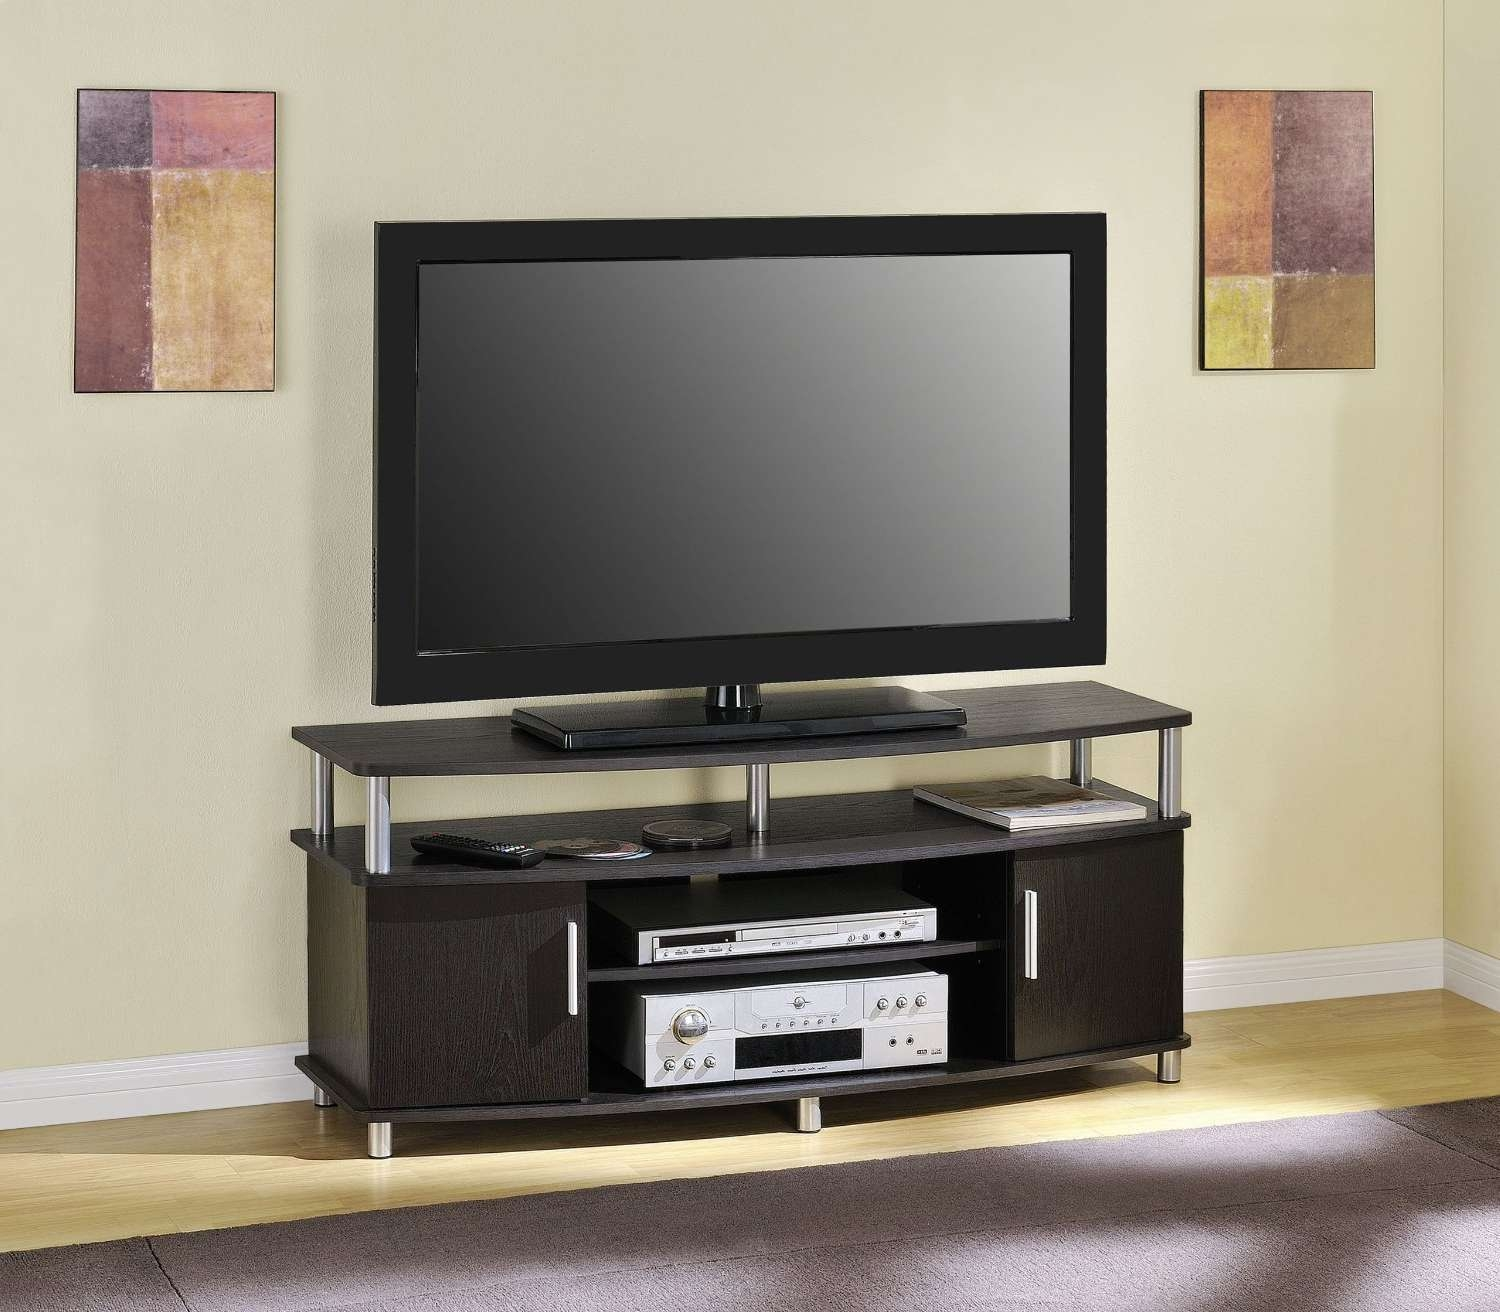 Tv Stand : 37 Rare Tv Stand For Flat Screen Tv Images Inspirations Throughout Tv Stands For Large Tvs (View 10 of 15)